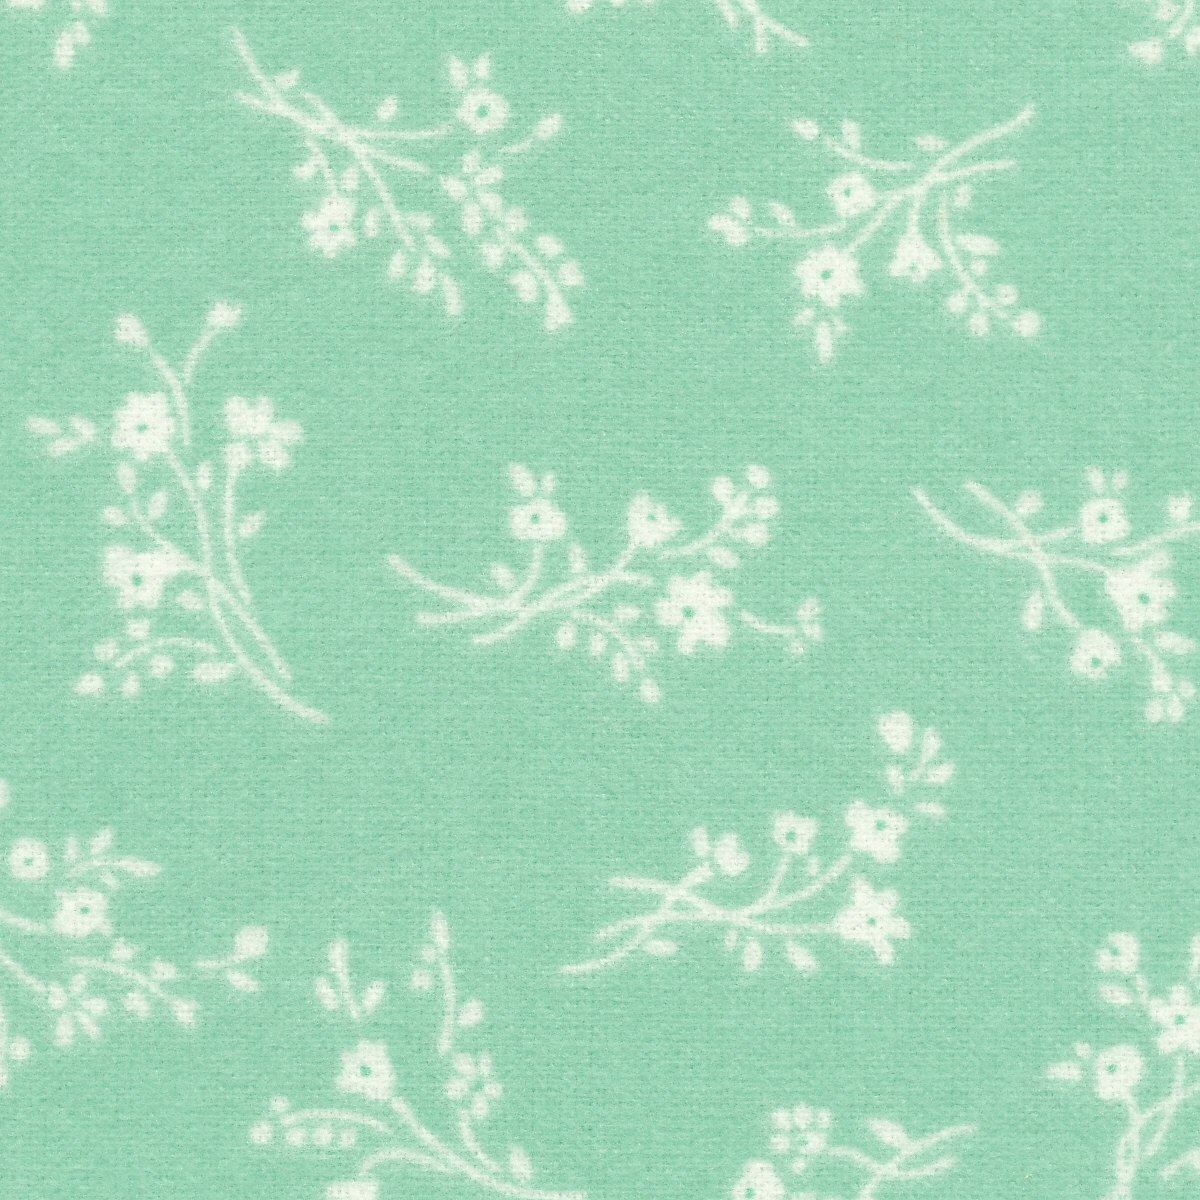 Afternoon in the Attic Flannel - 3269-03